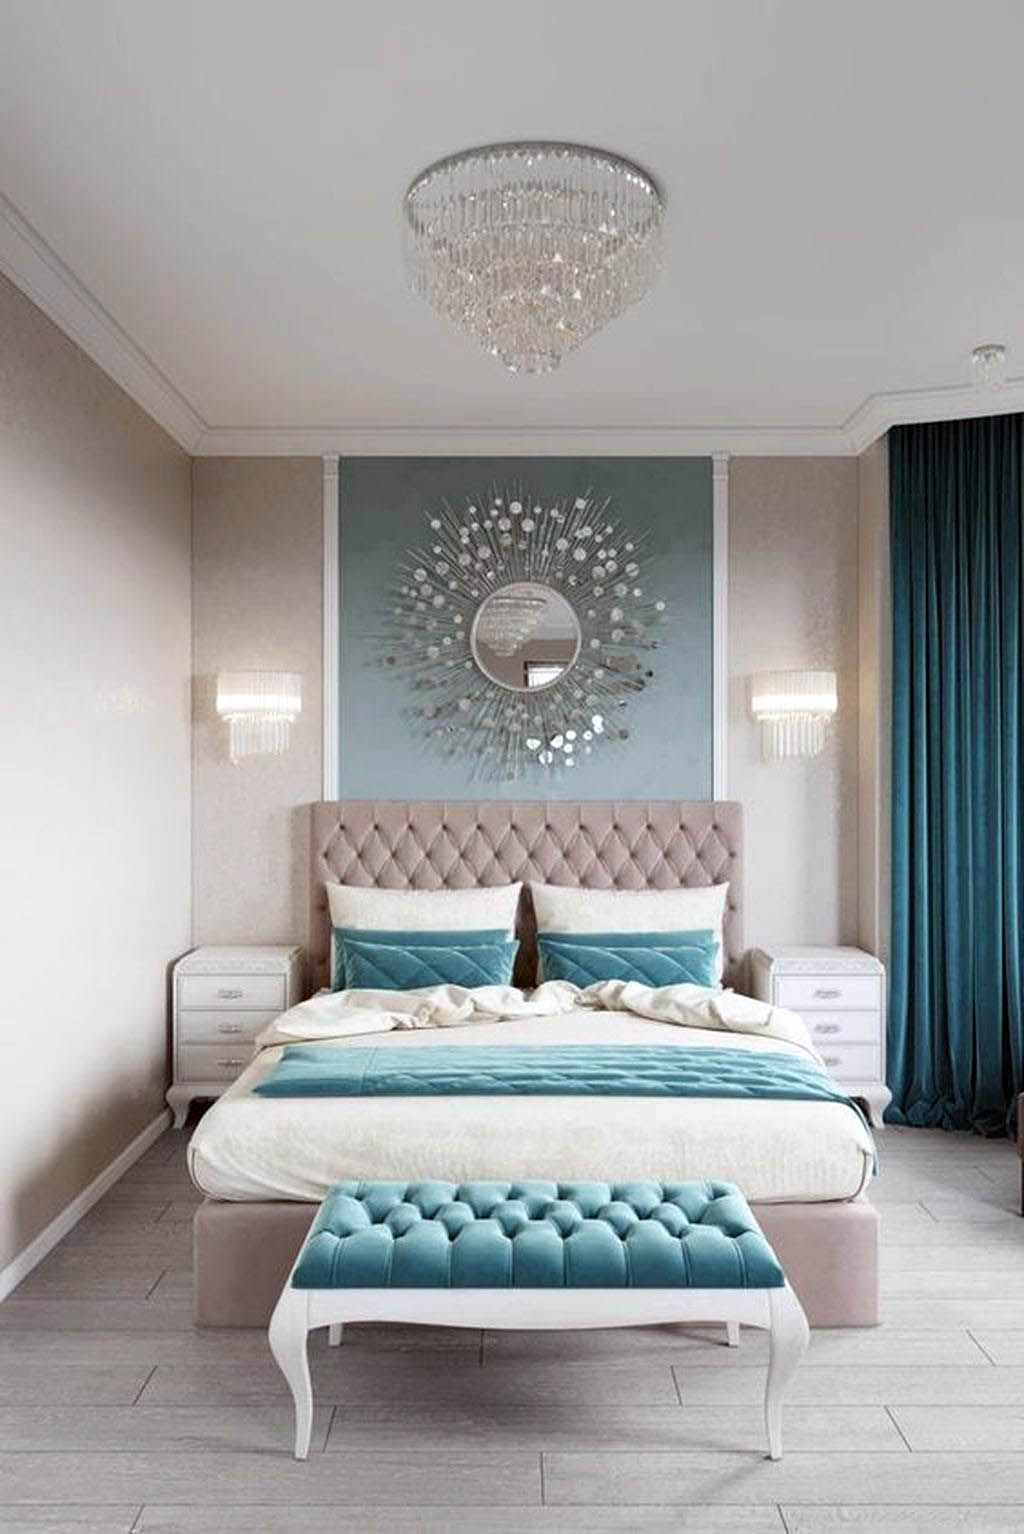 COZY GRAY HEADBOARD IDEAS FOR YOUR HOME IN 2020 SIMPLE